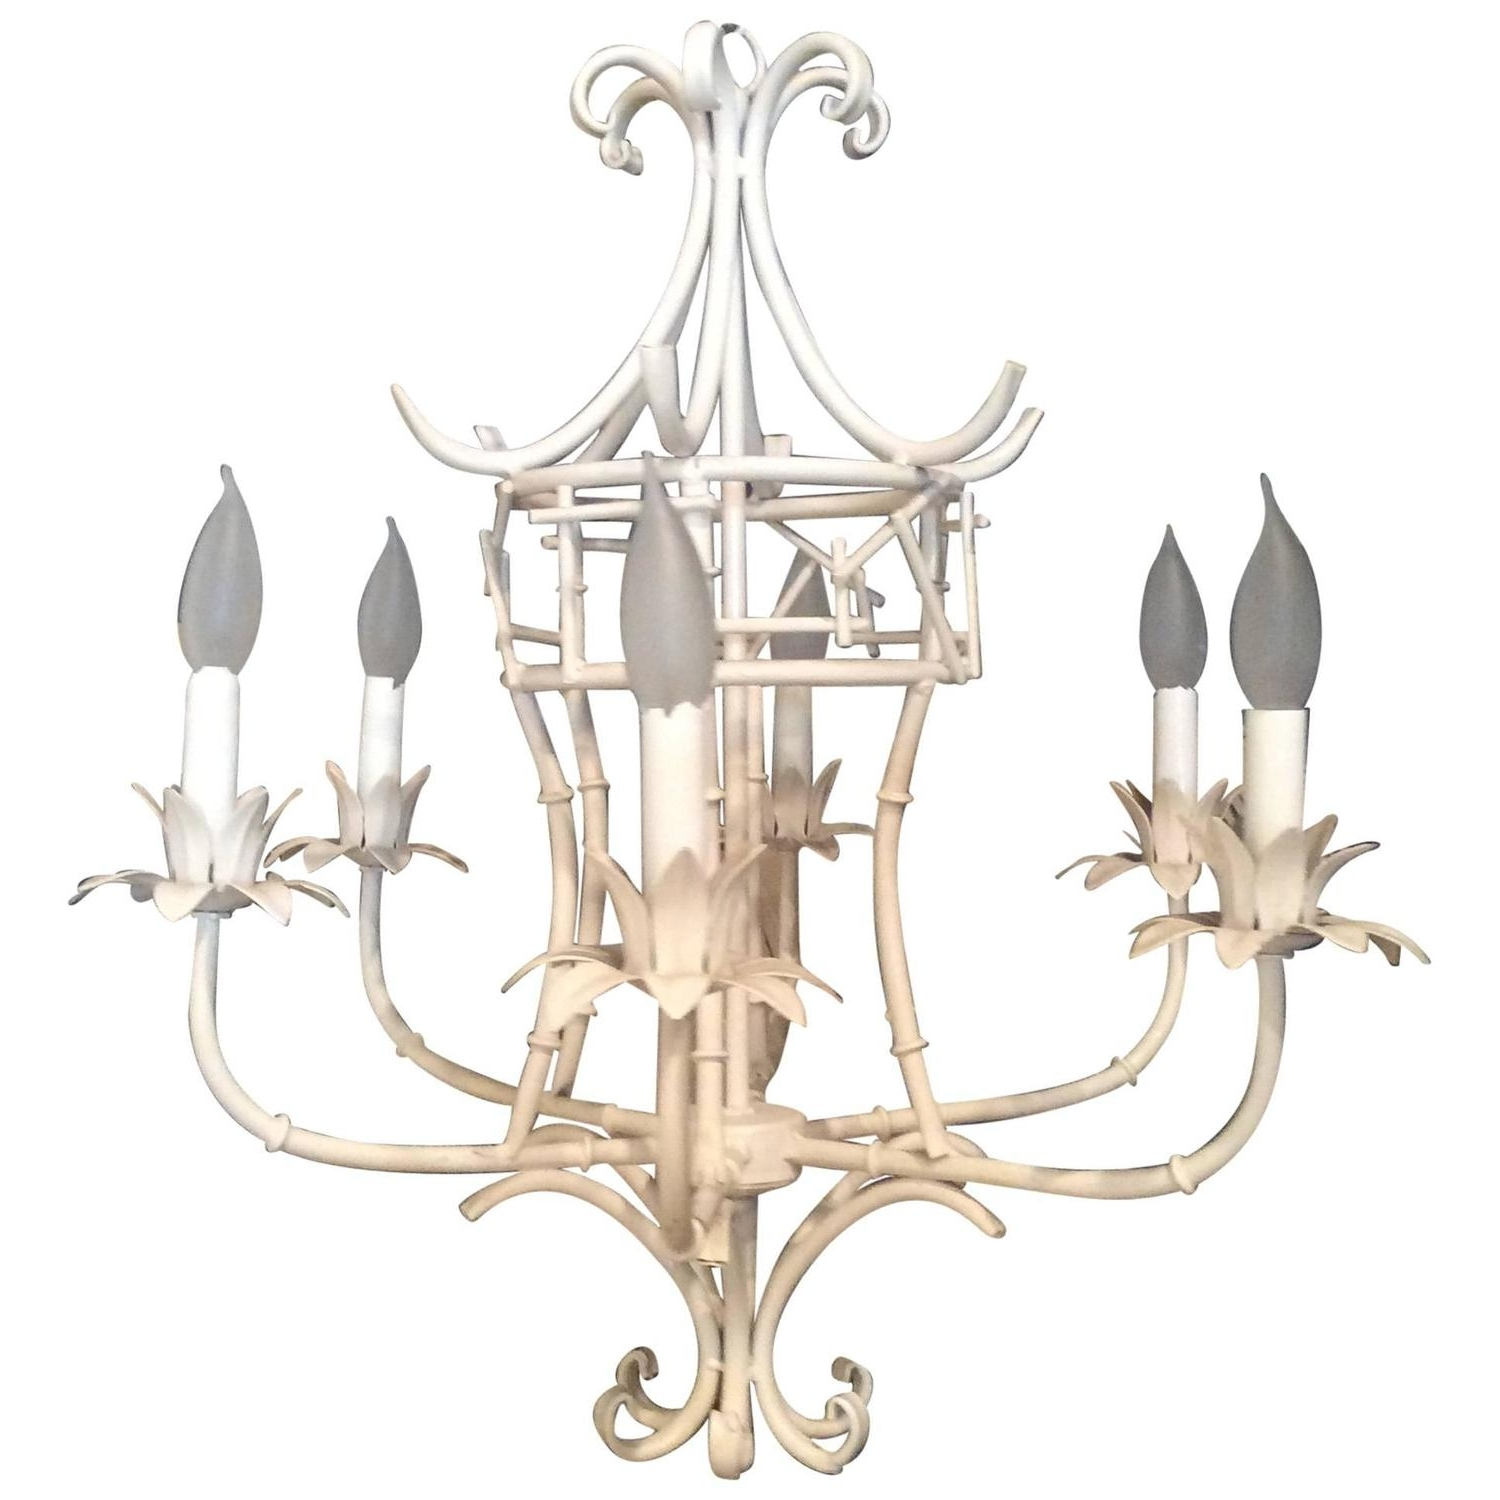 Newest Pagoda Chandeliers – 69 For Sale On 1Stdibs Throughout Chinese Chandeliers (Gallery 14 of 20)